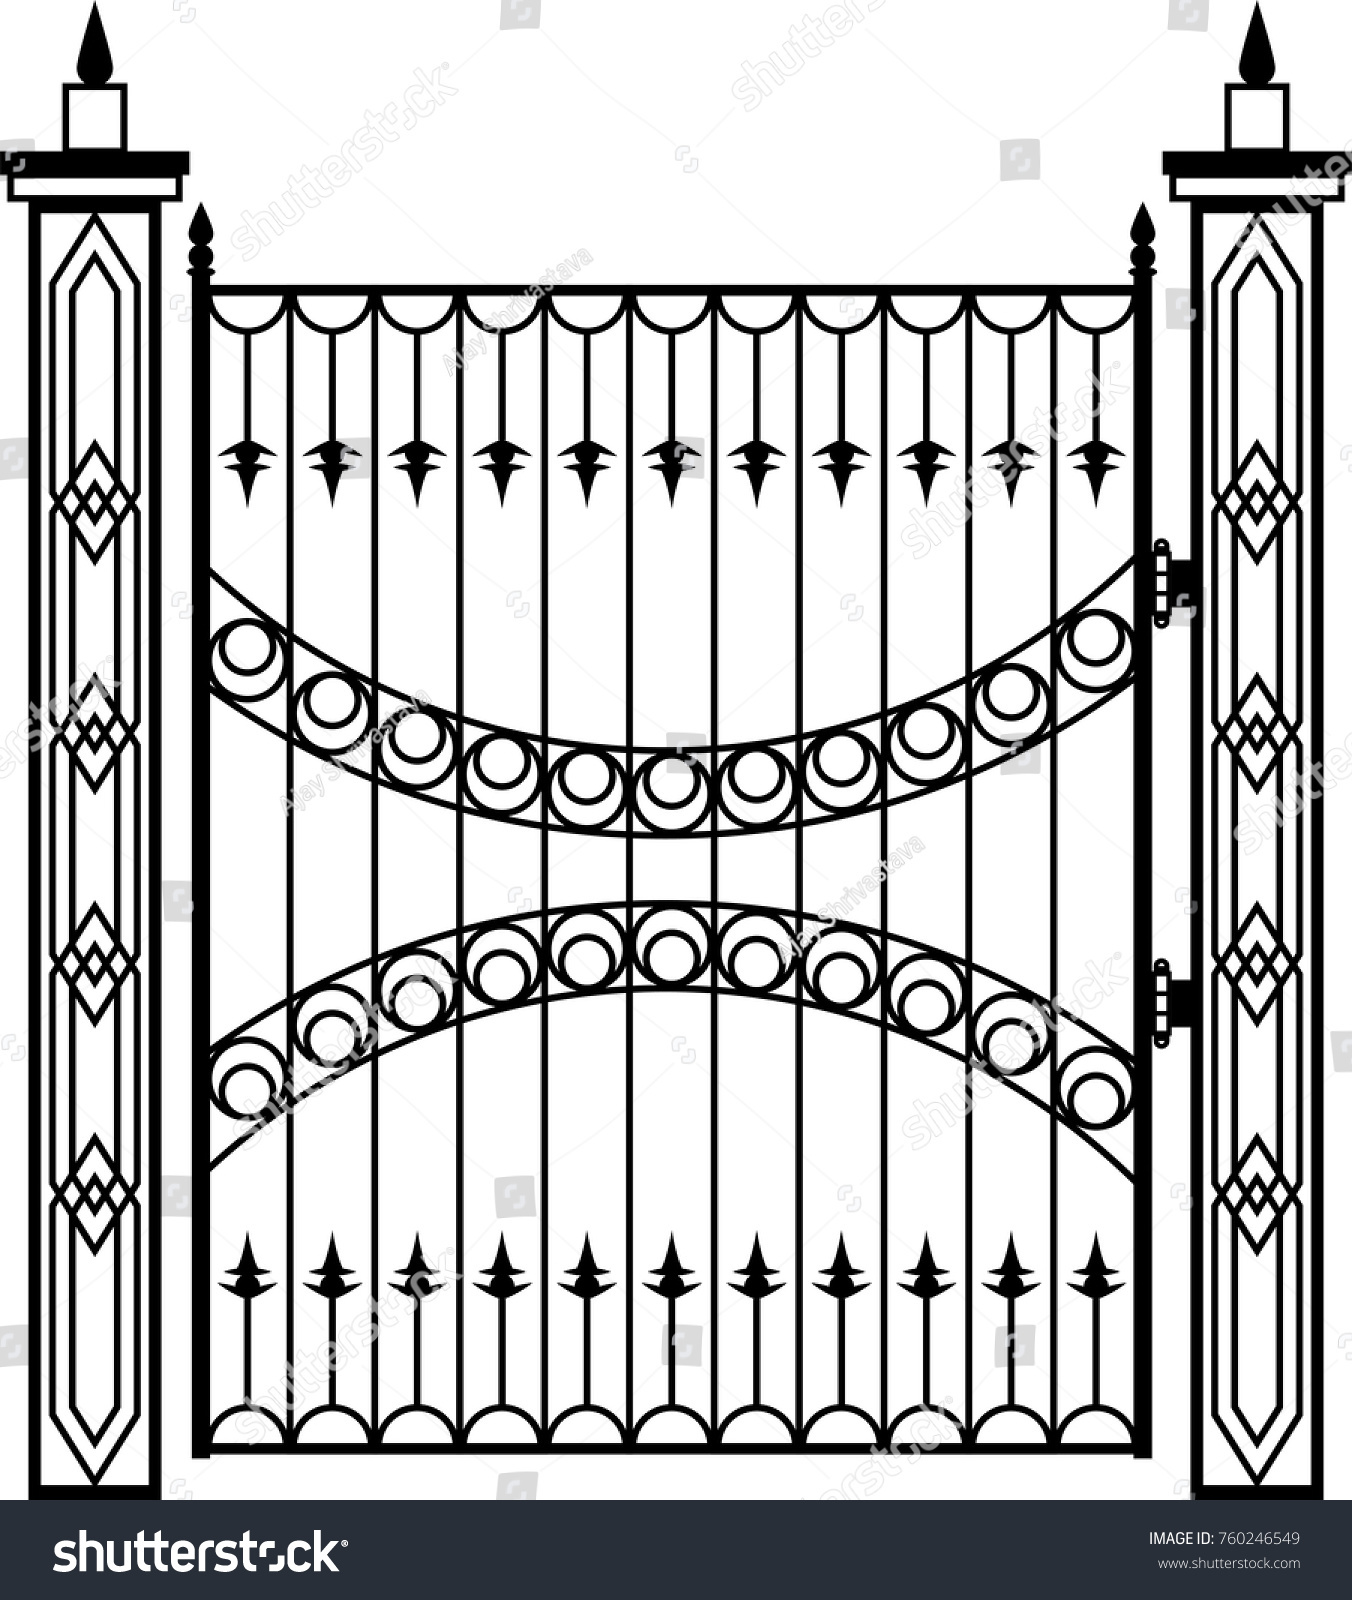 Wrought Iron Gate Ornamental Design Vector Stock Vector 760246549 ...